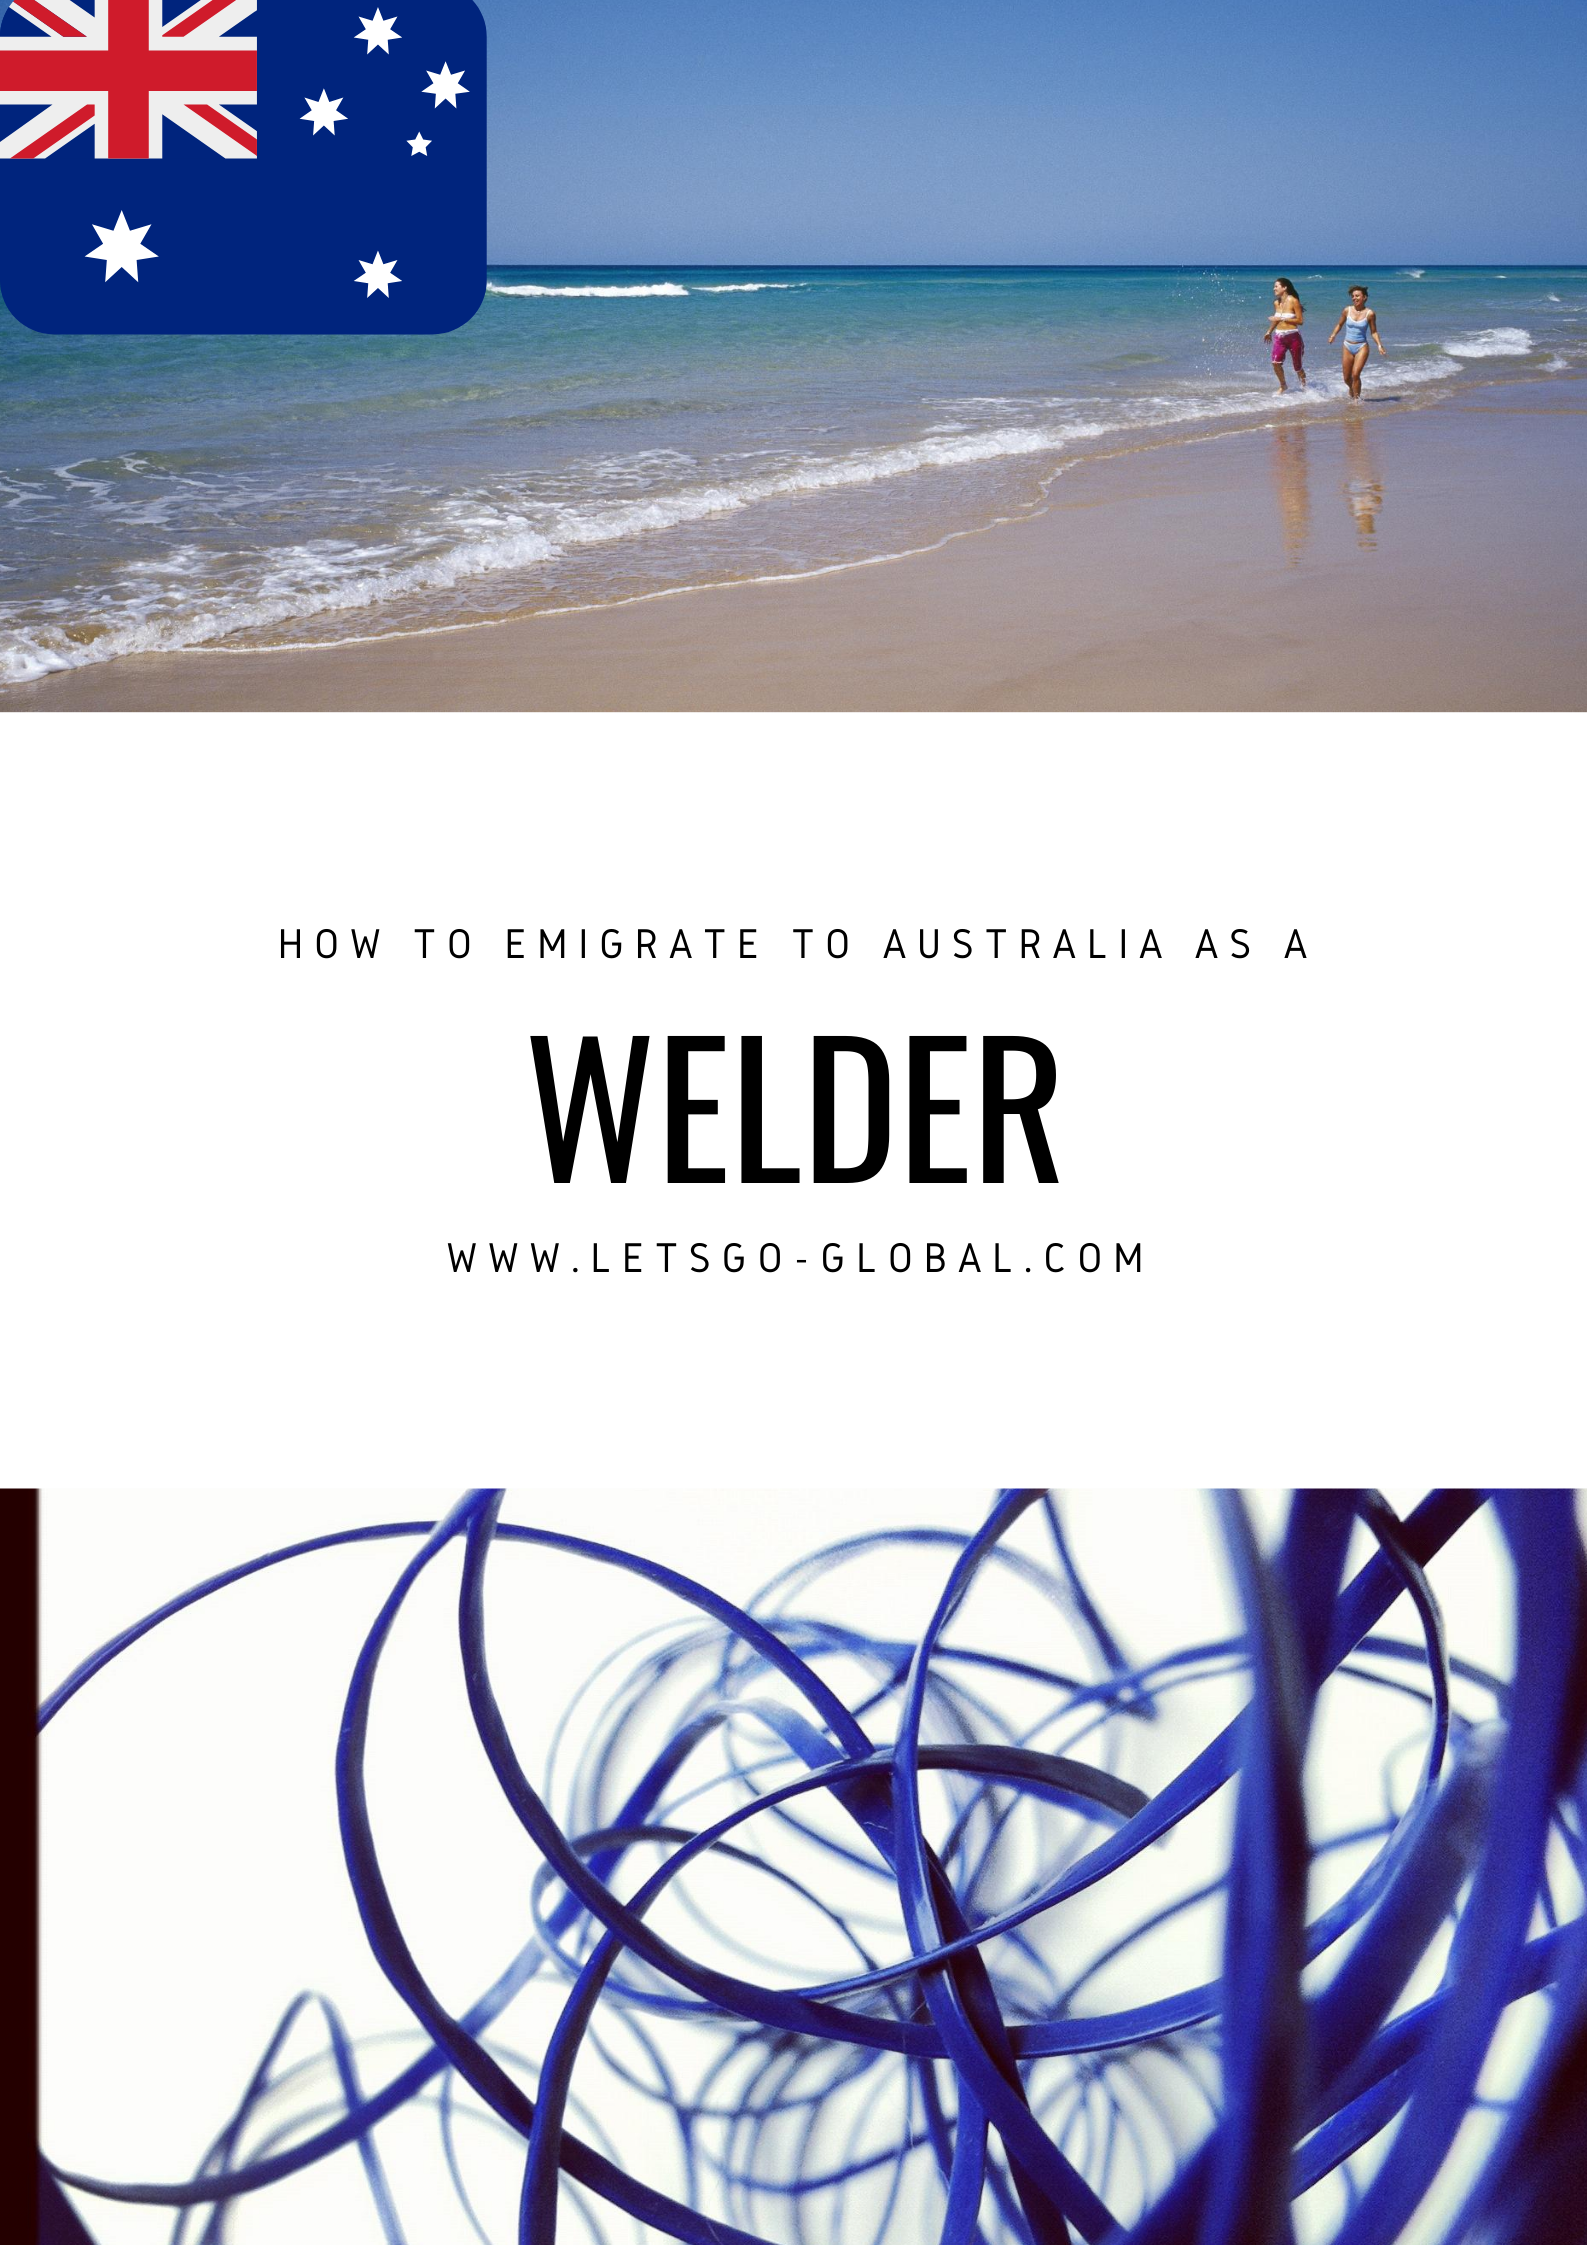 Migrate to Australia as a welder